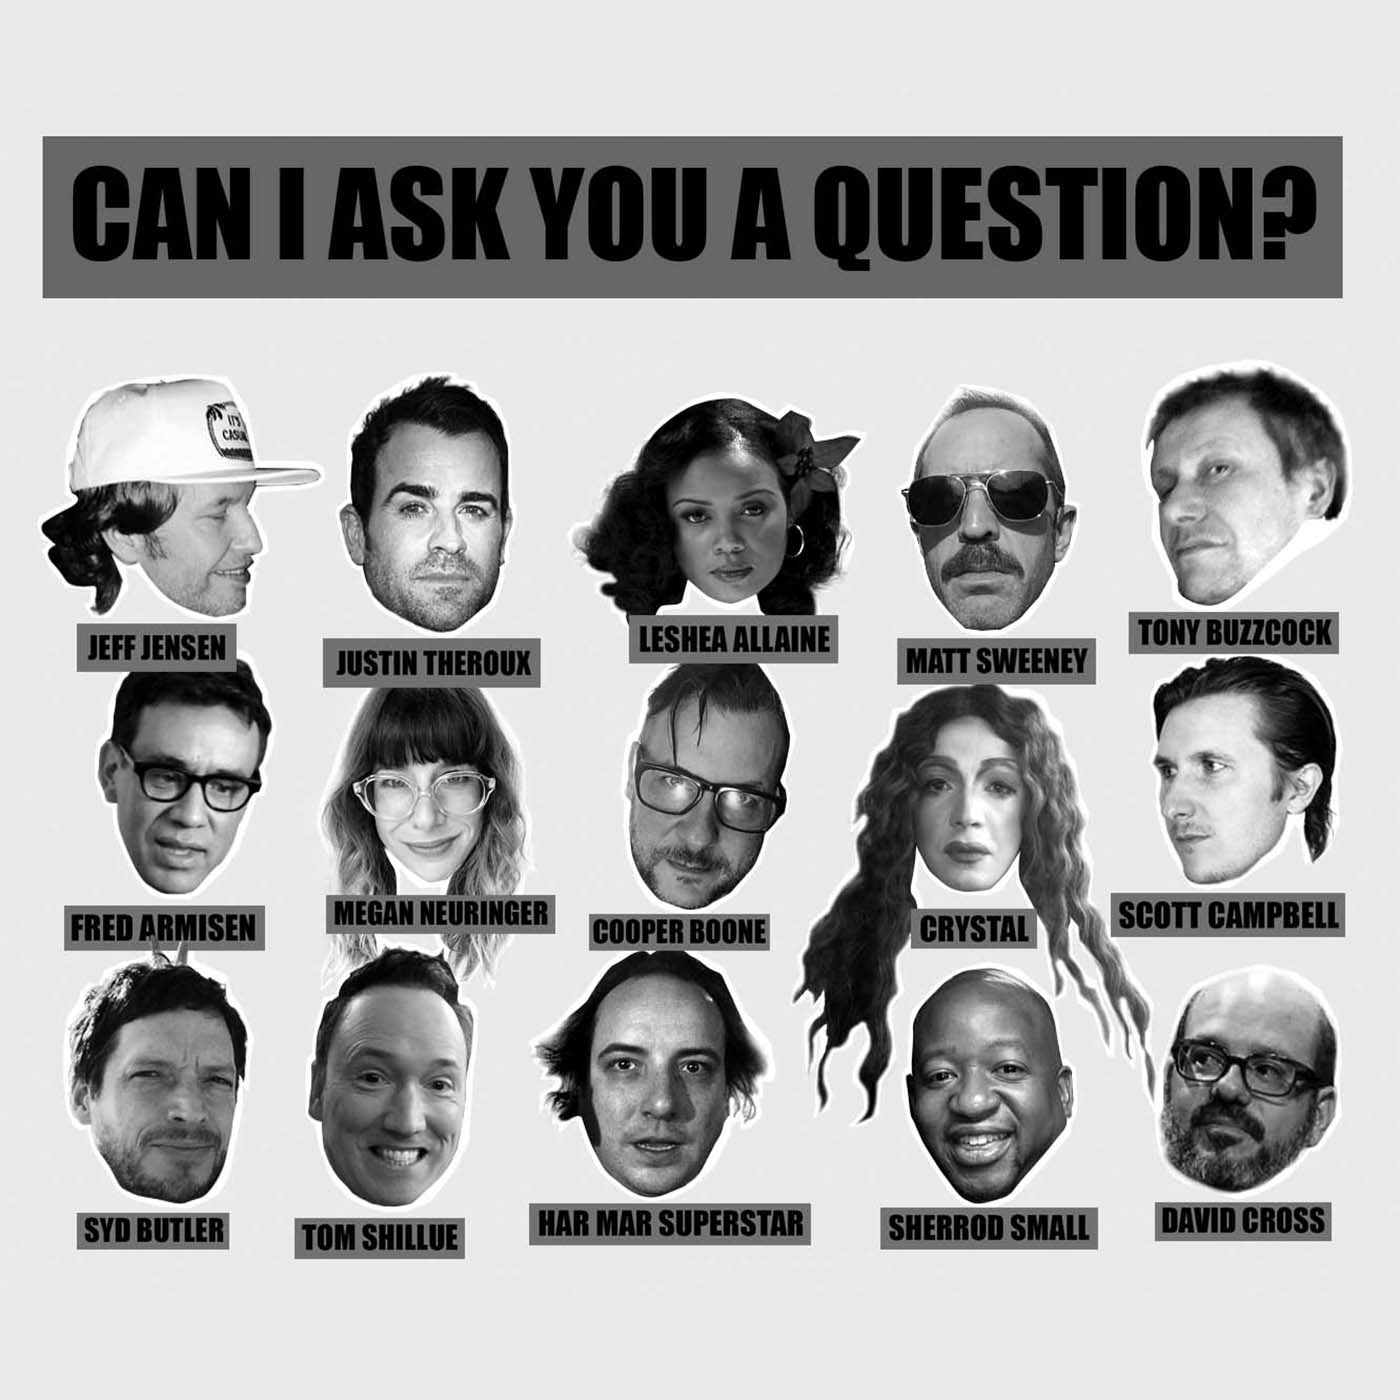 Can I Ask You a Question?